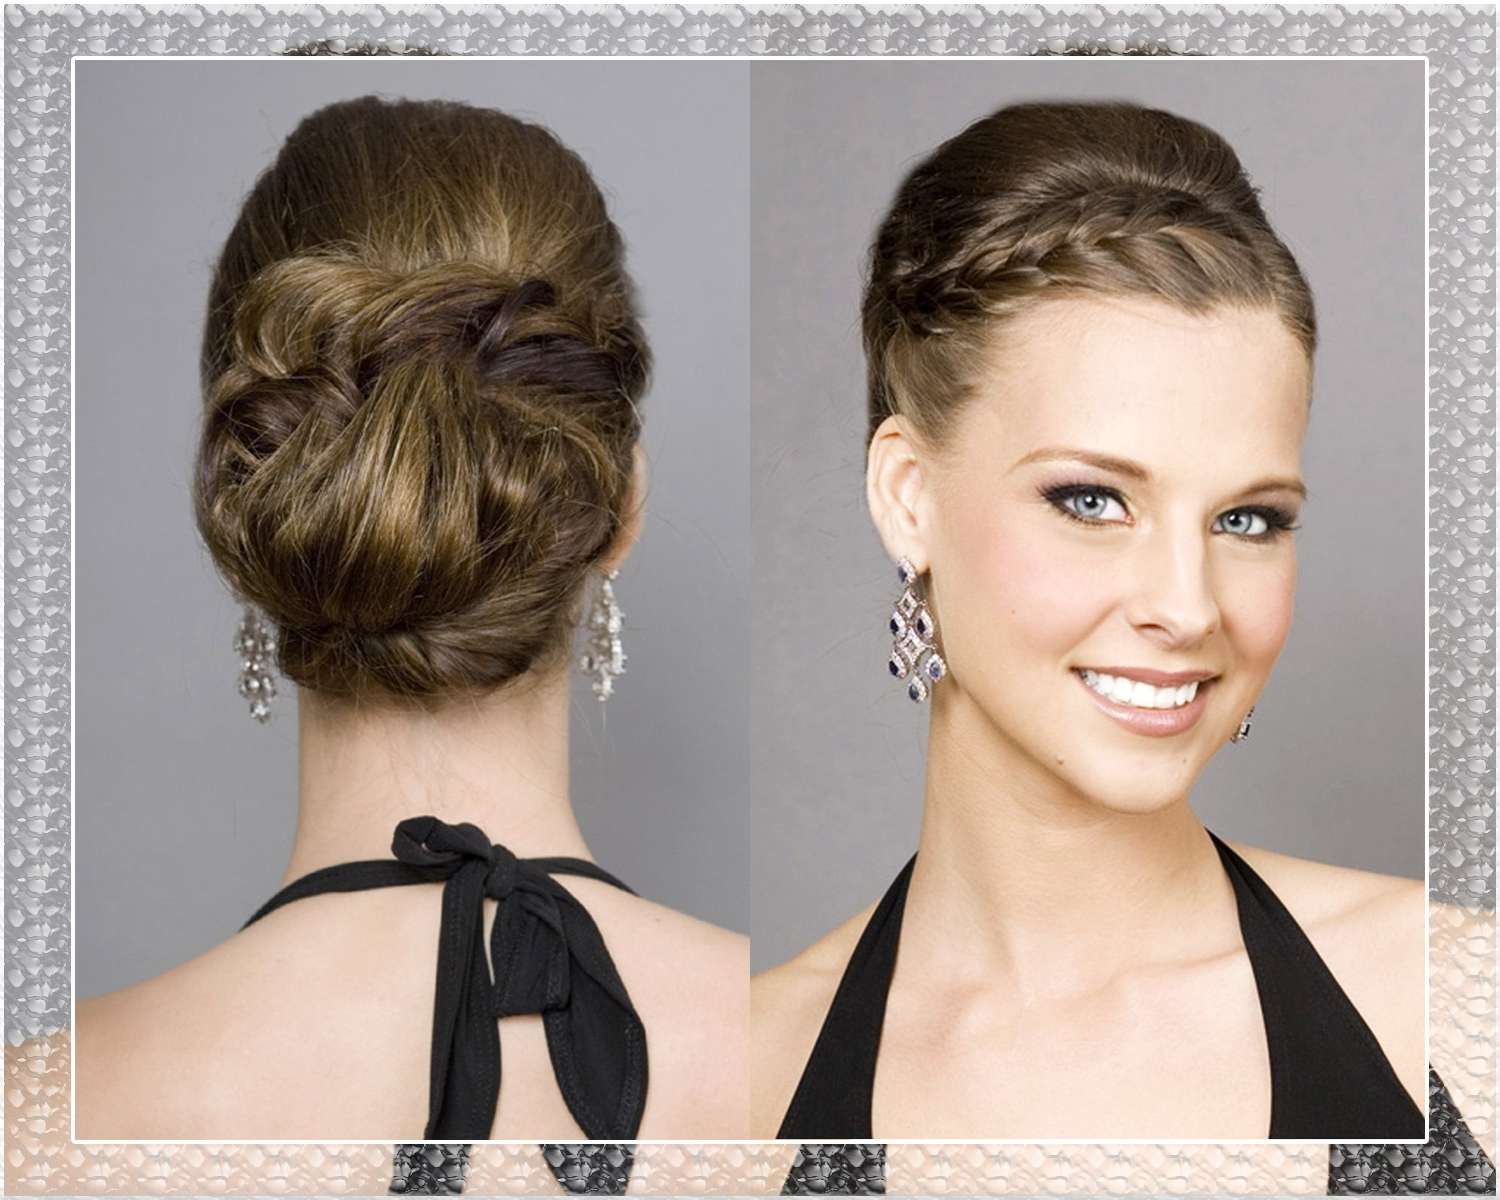 Fashionable Wedding Updos For Long Hair With Braids Throughout Braided Updo Wedding Hairstyles (View 10 of 15)